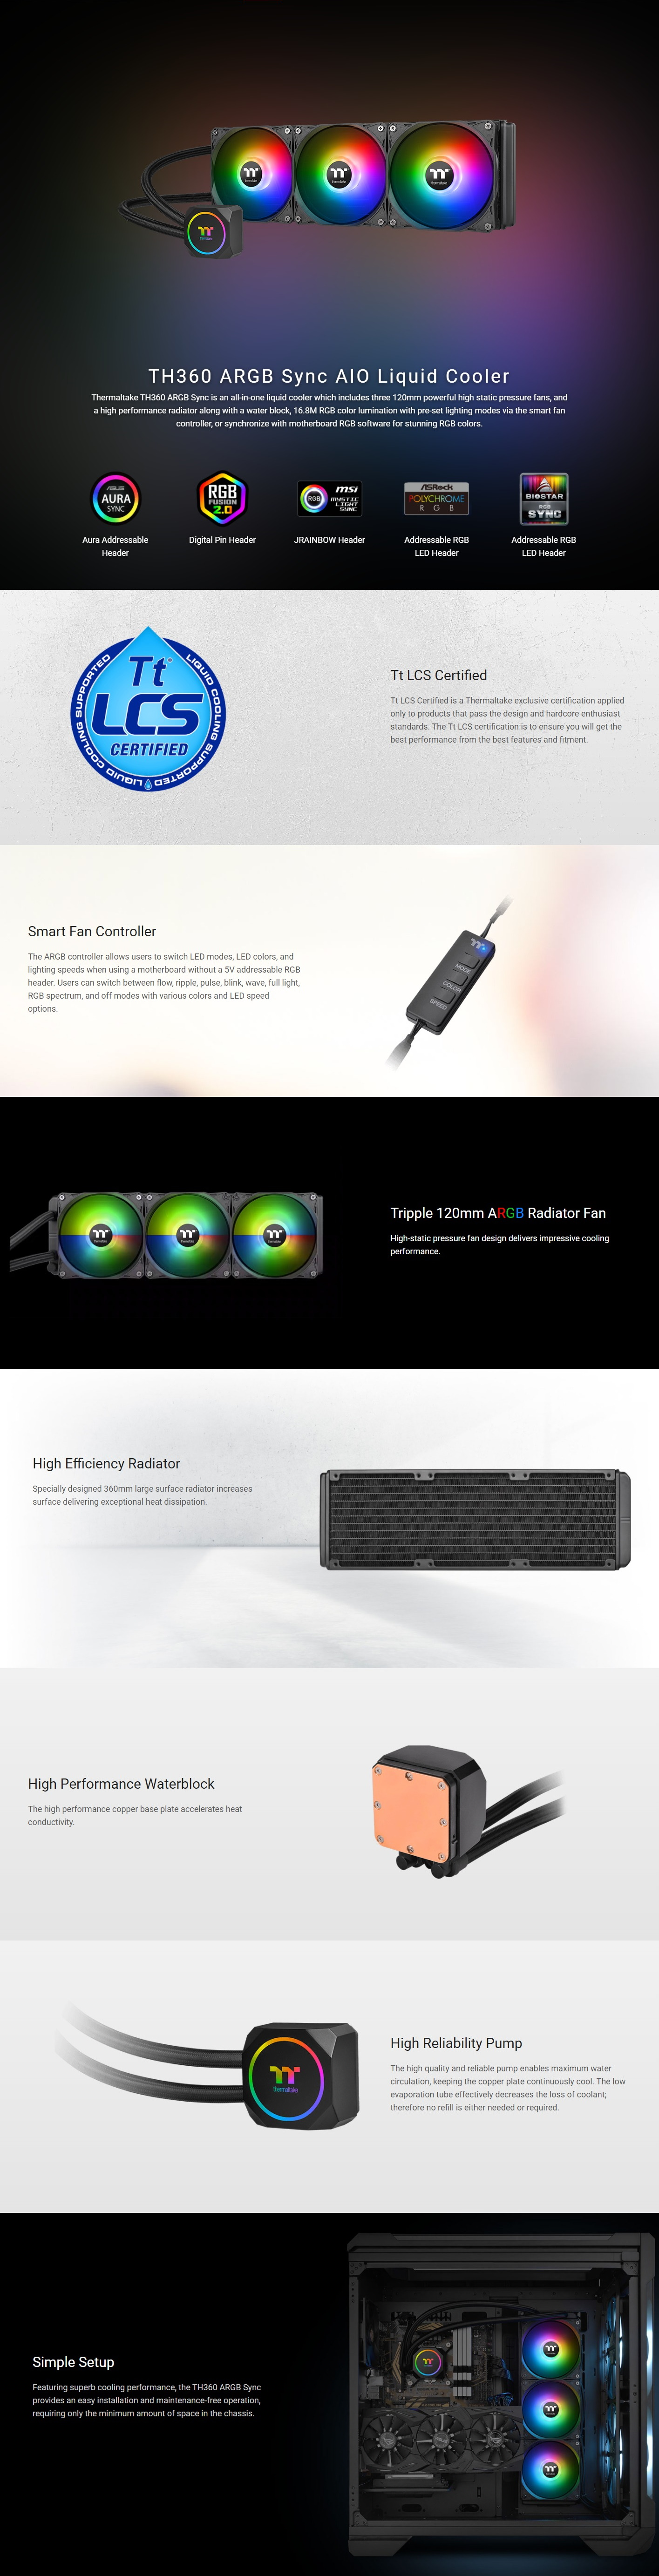 A large marketing image providing additional information about the product Thermaltake TH360 ARGB AIO Liquid CPU Cooler - Additional alt info not provided